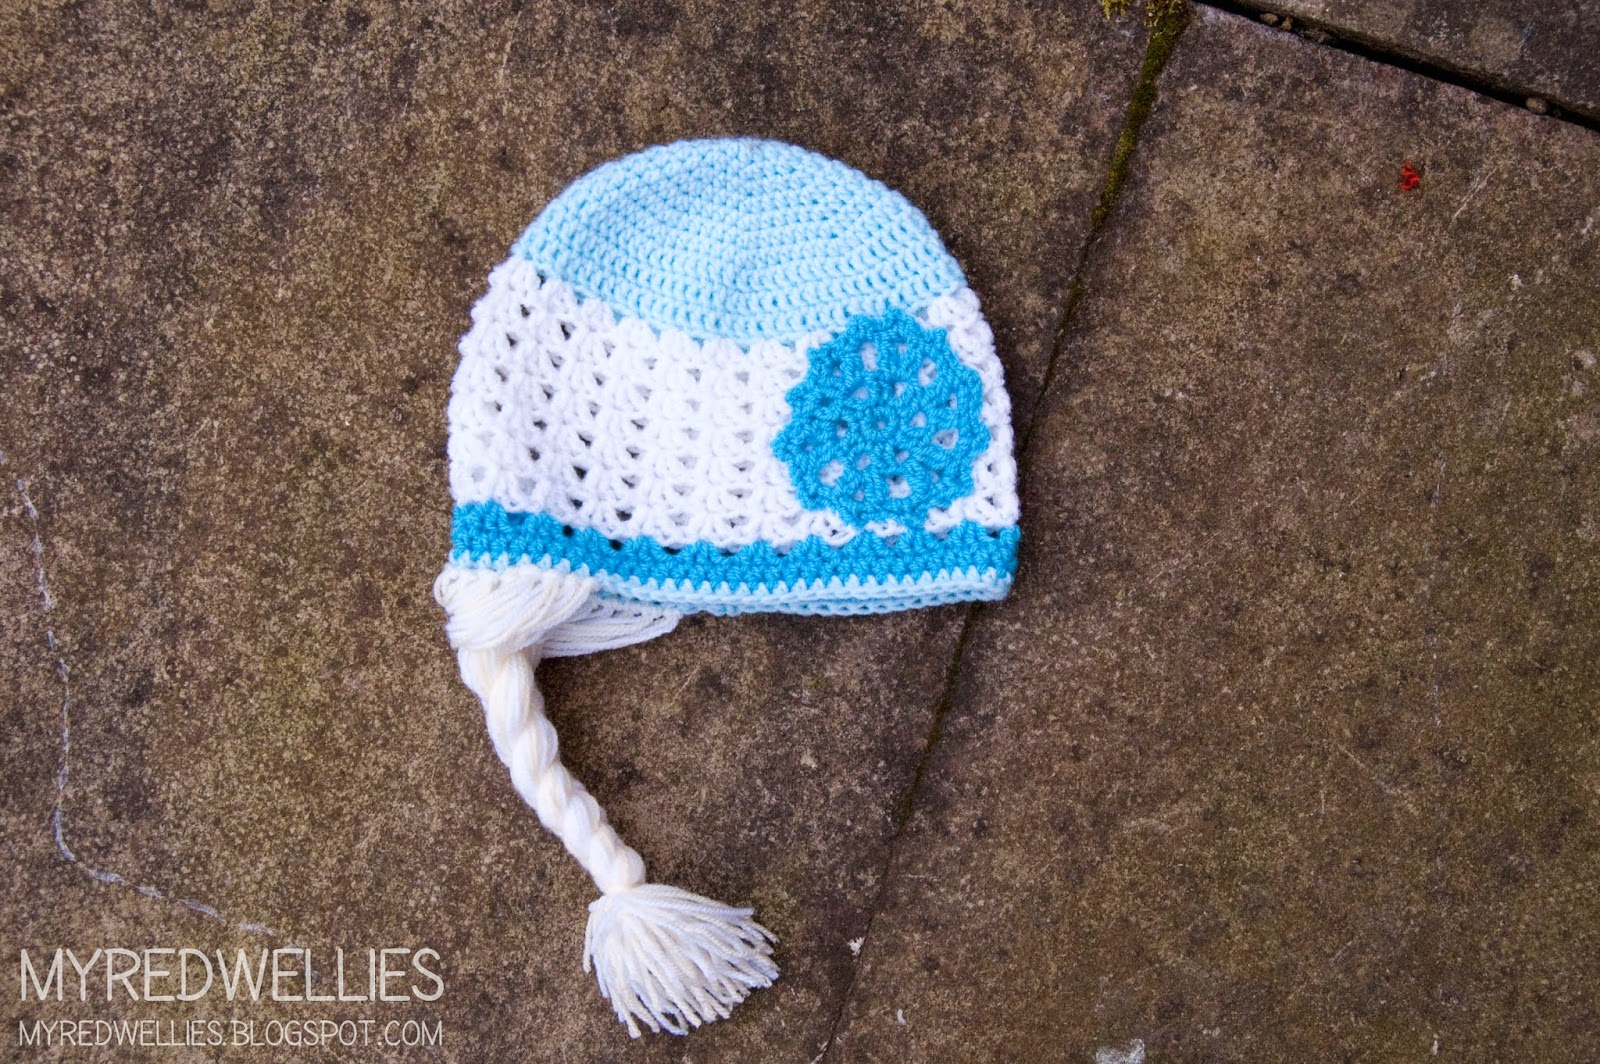 Free Crochet Patterns For Elsa Hats : My Red Wellies: Anna & Elsa crochet hats - A free Crochet ...